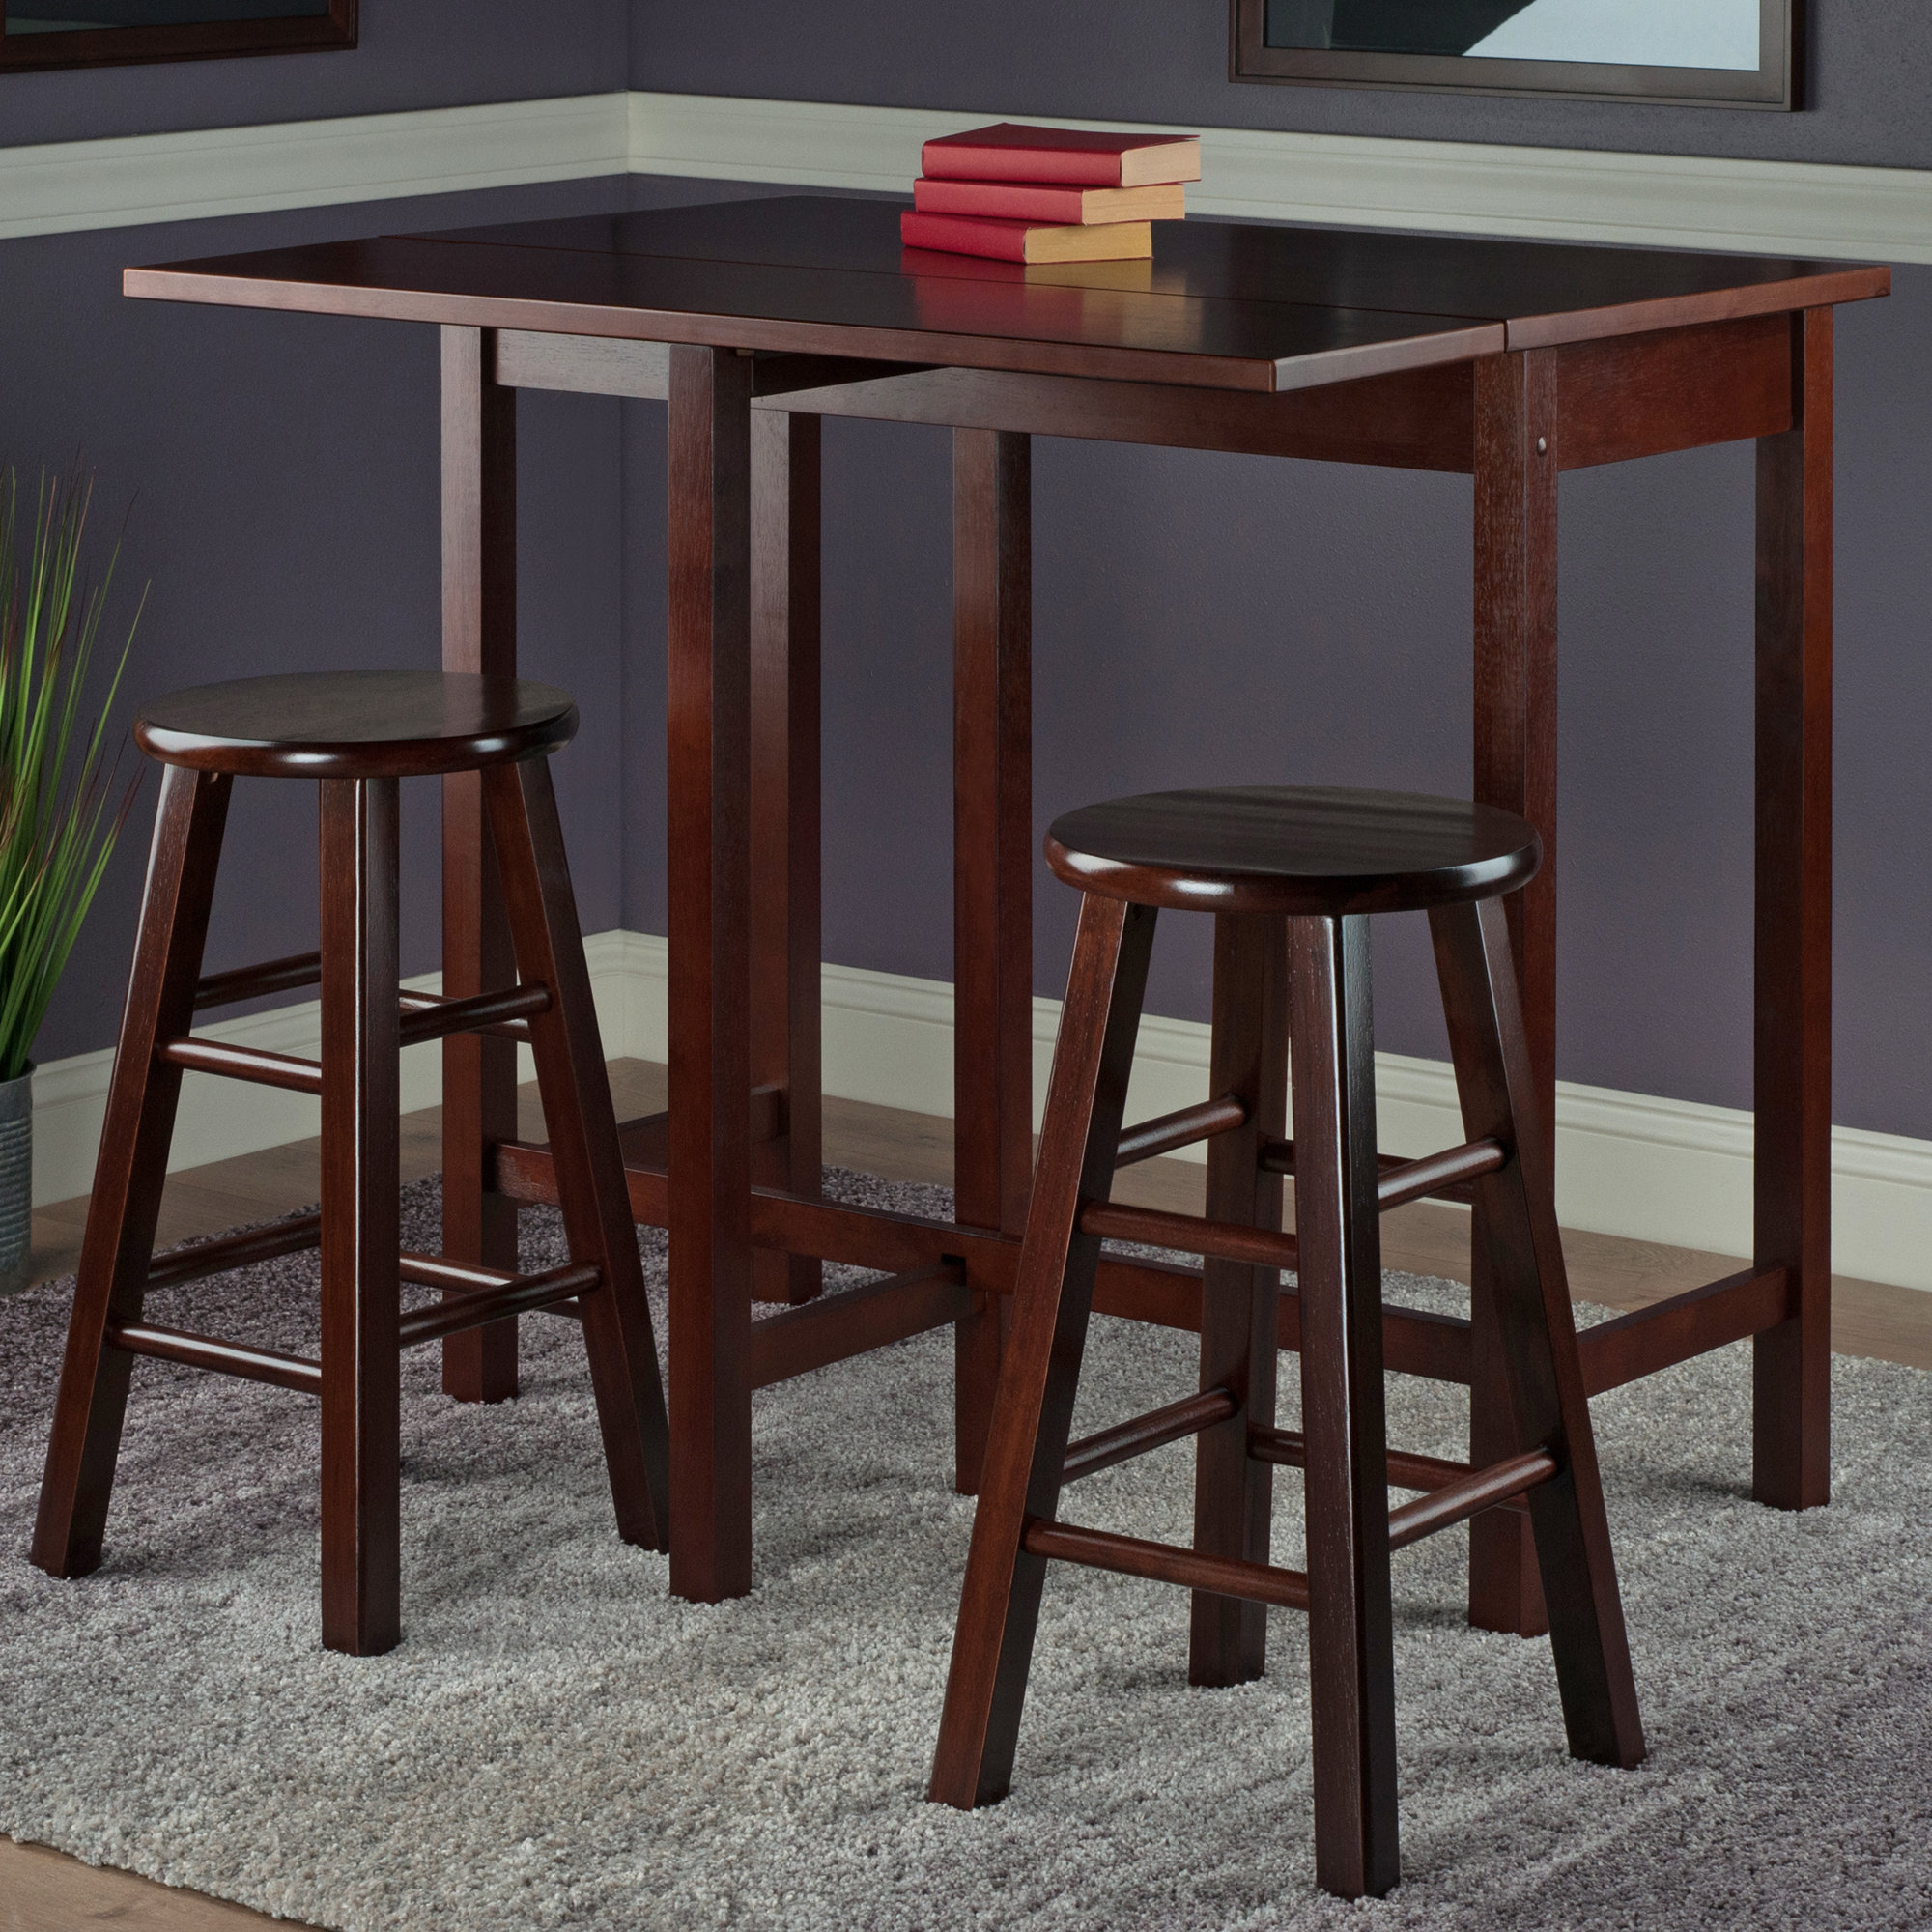 2020 Red Barrel Studio Bettencourt 3 Piece Counter Height Pub Table Set For Bettencourt 3 Piece Counter Height Dining Sets (#1 of 20)